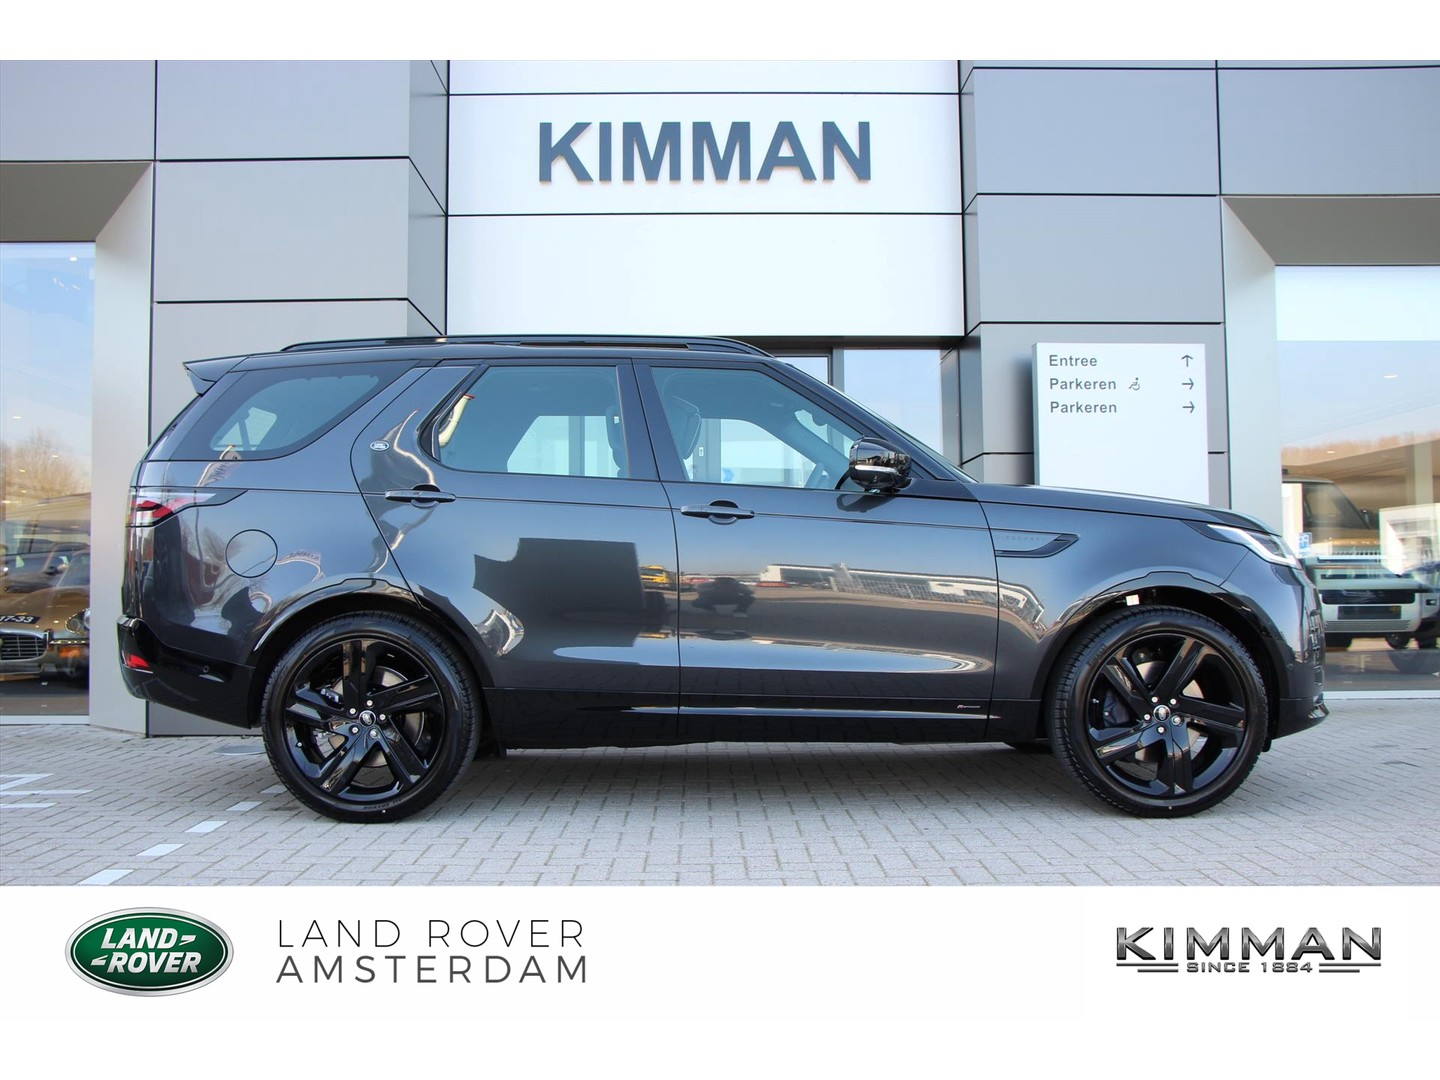 Land rover Discovery P360 3.0t r-dynamic s mhev